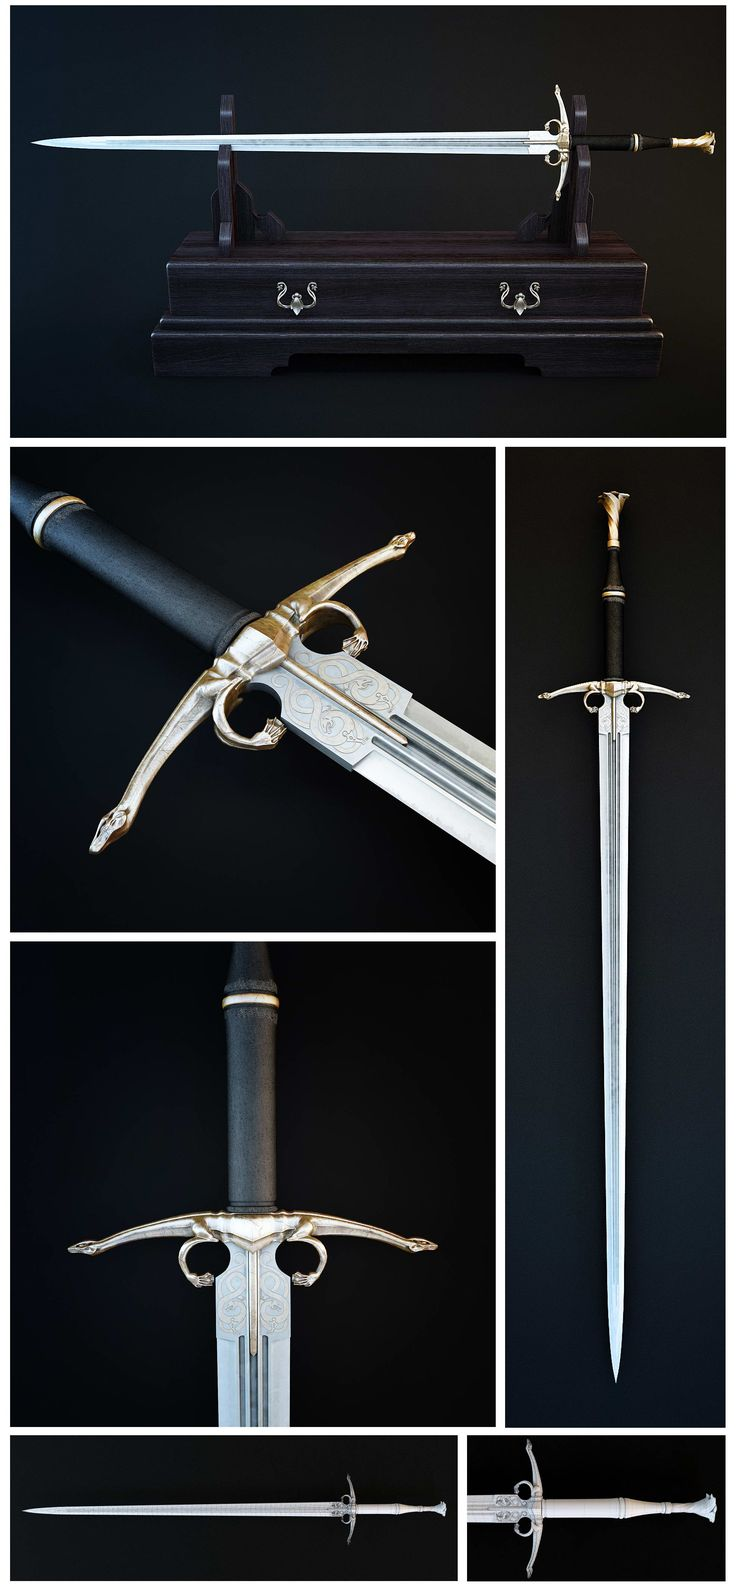 Dragon's Sword by HorheSoloma